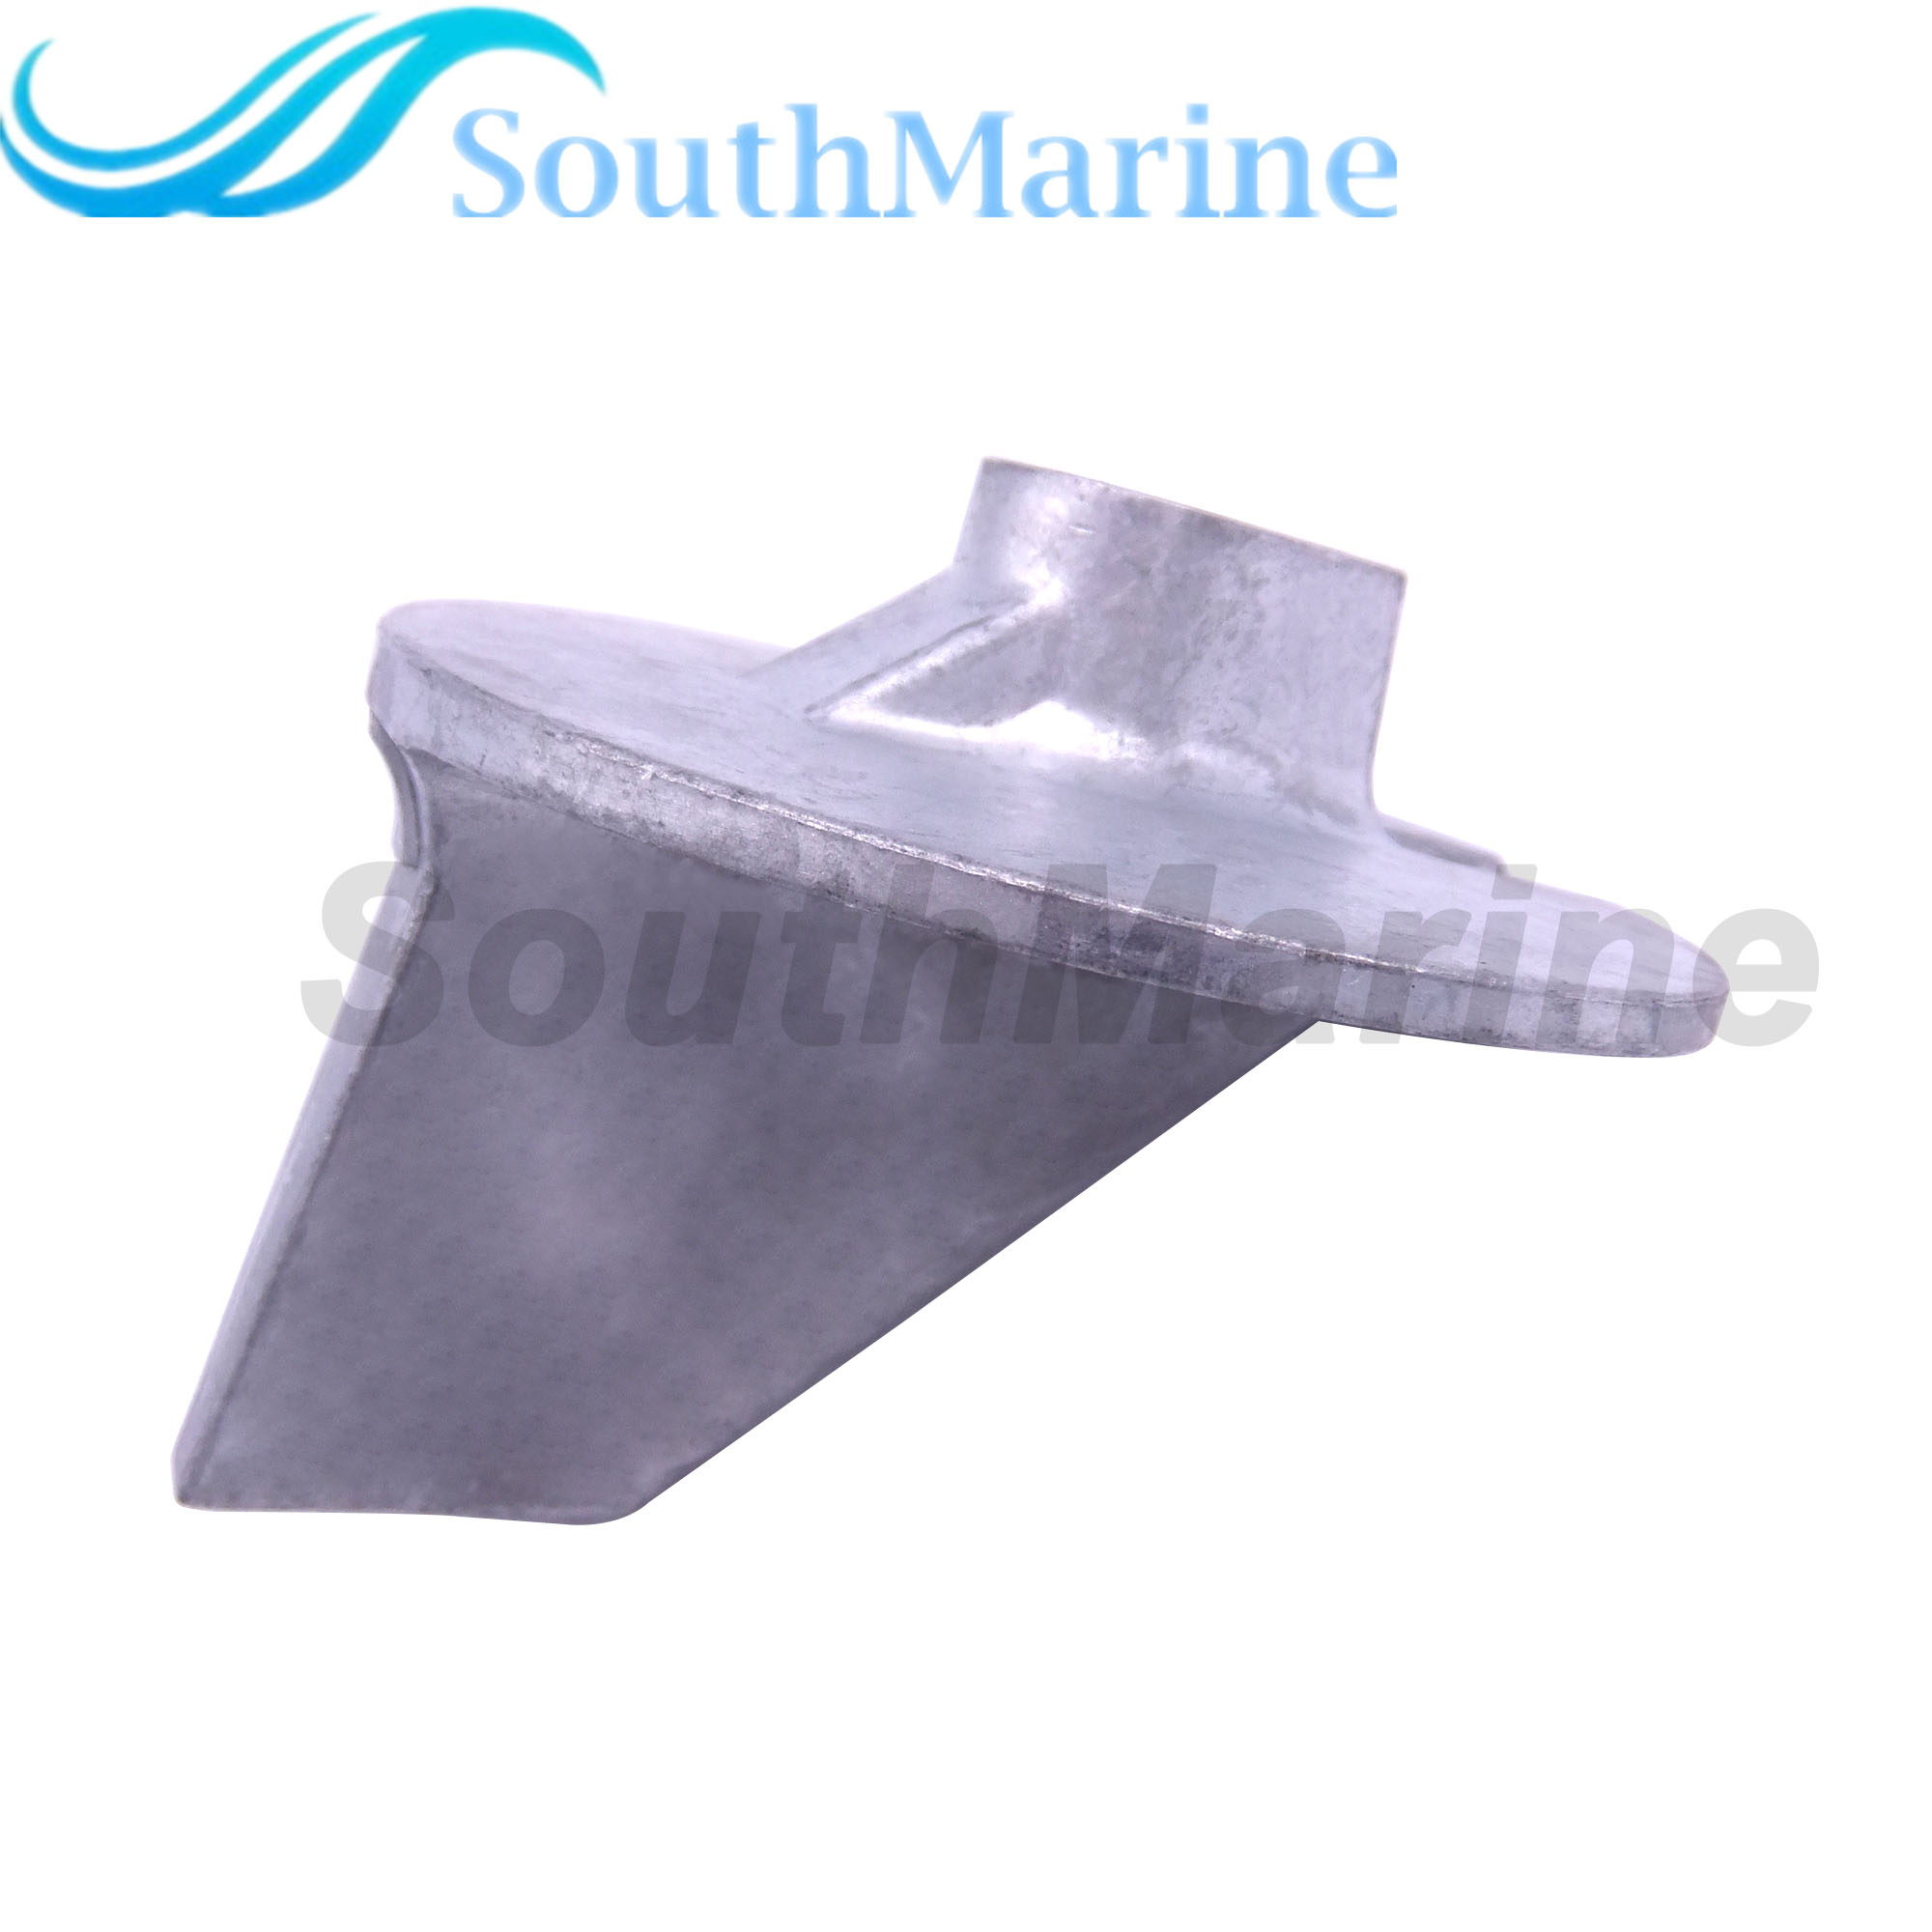 6E5-45371-01 Tab Trim Anode For Yamaha Outboard Engine 115HP-225HP 2/4-stroke, Sierra 18-6097